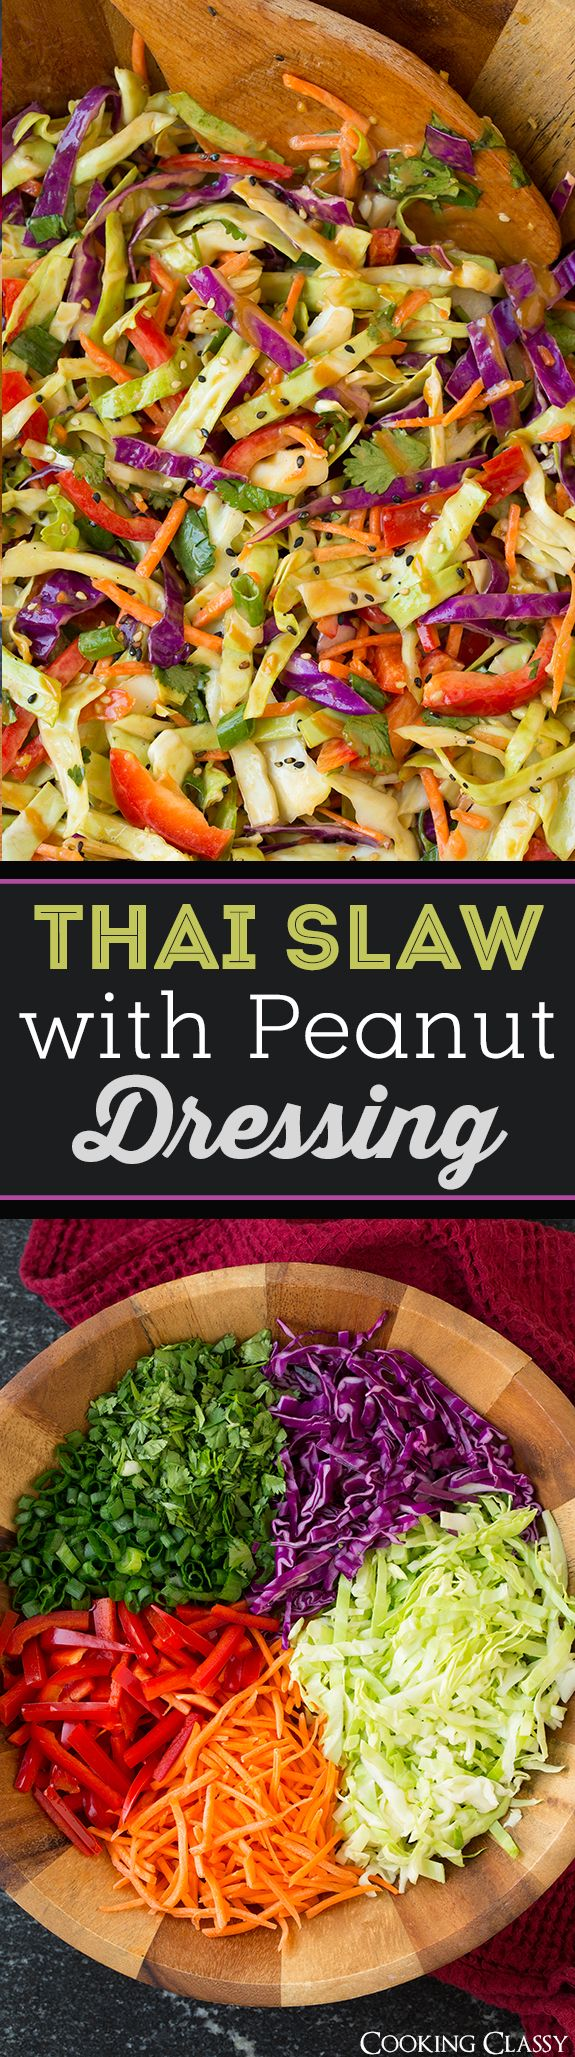 Thai Slaw with Peanut Dressing - easy side dish that's perfect with grilled…